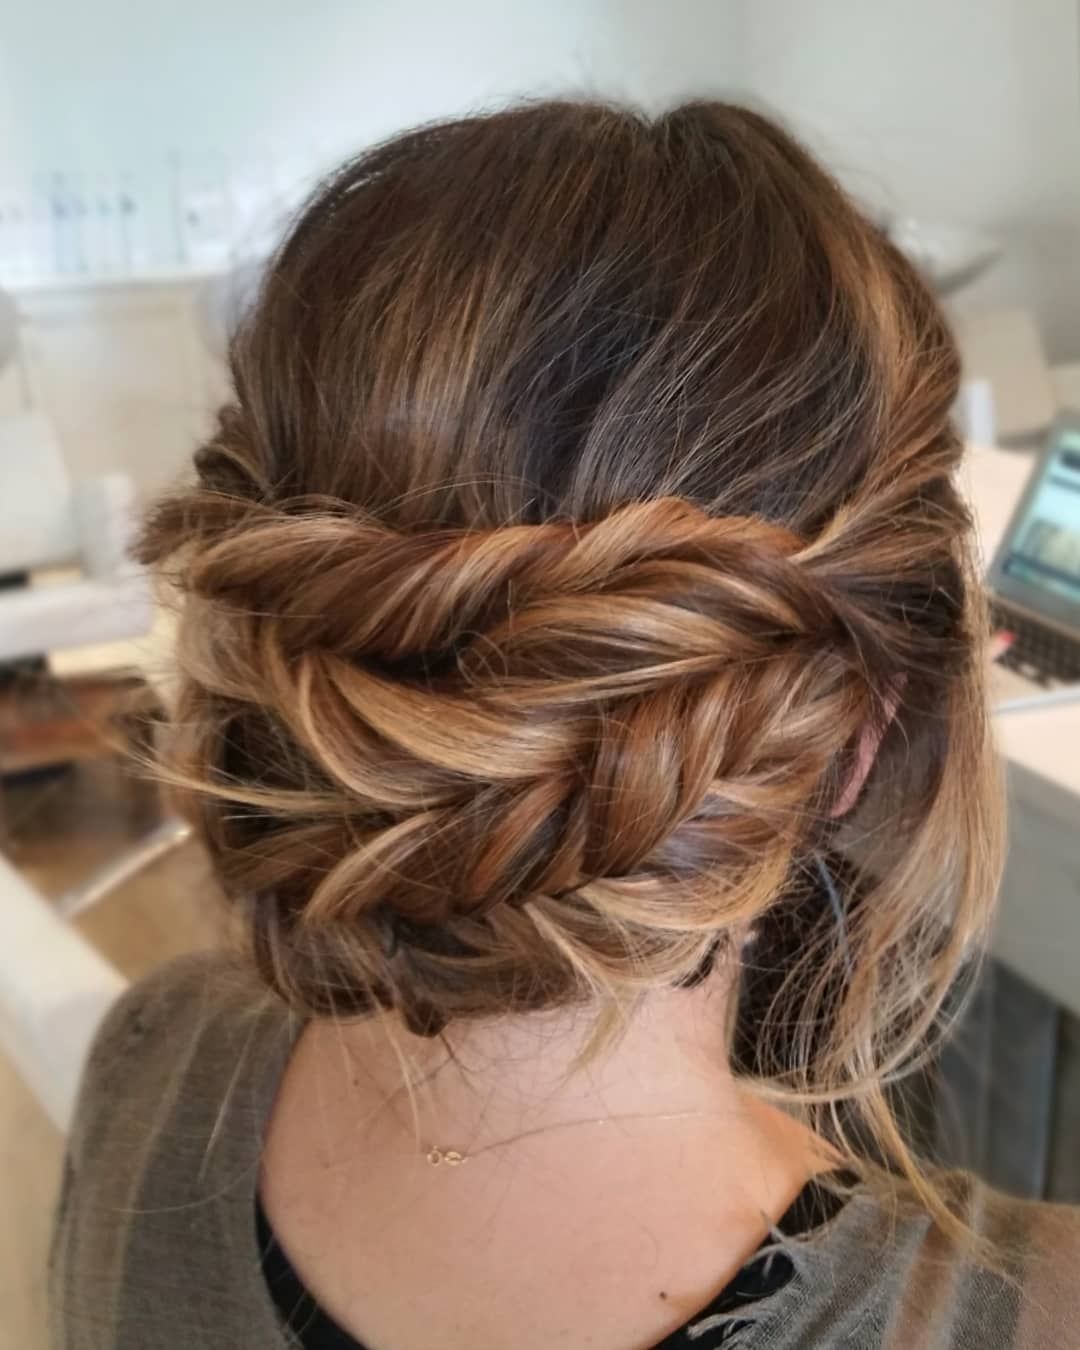 Wedding Hairstyle Upstyle: Beautiful Whimsical Braided Updo